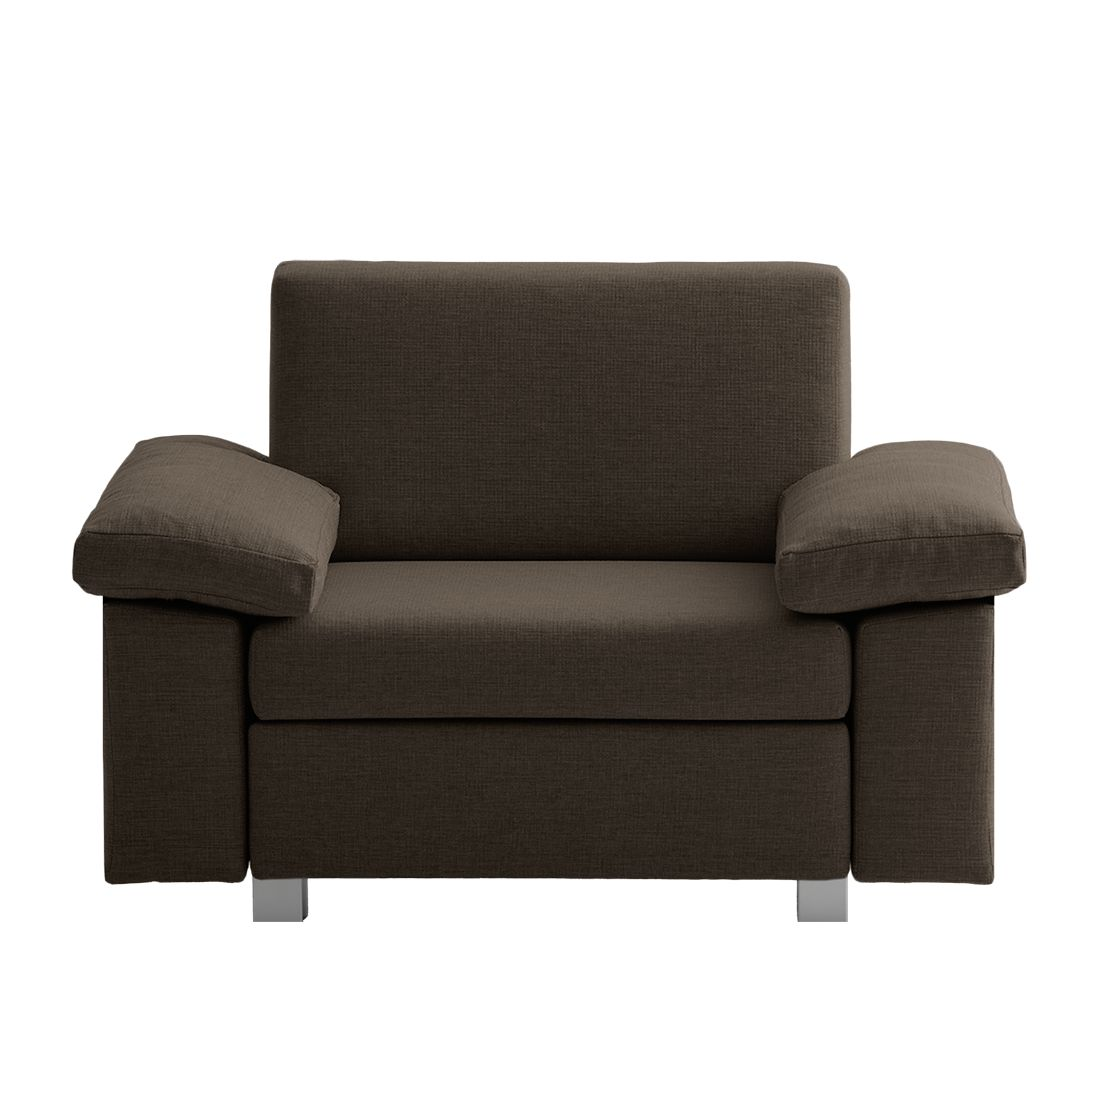 Fauteuil convertible Plaza - Tissu - Marron - Types d'accoudoir rabattable, chillout by Franz Fertig